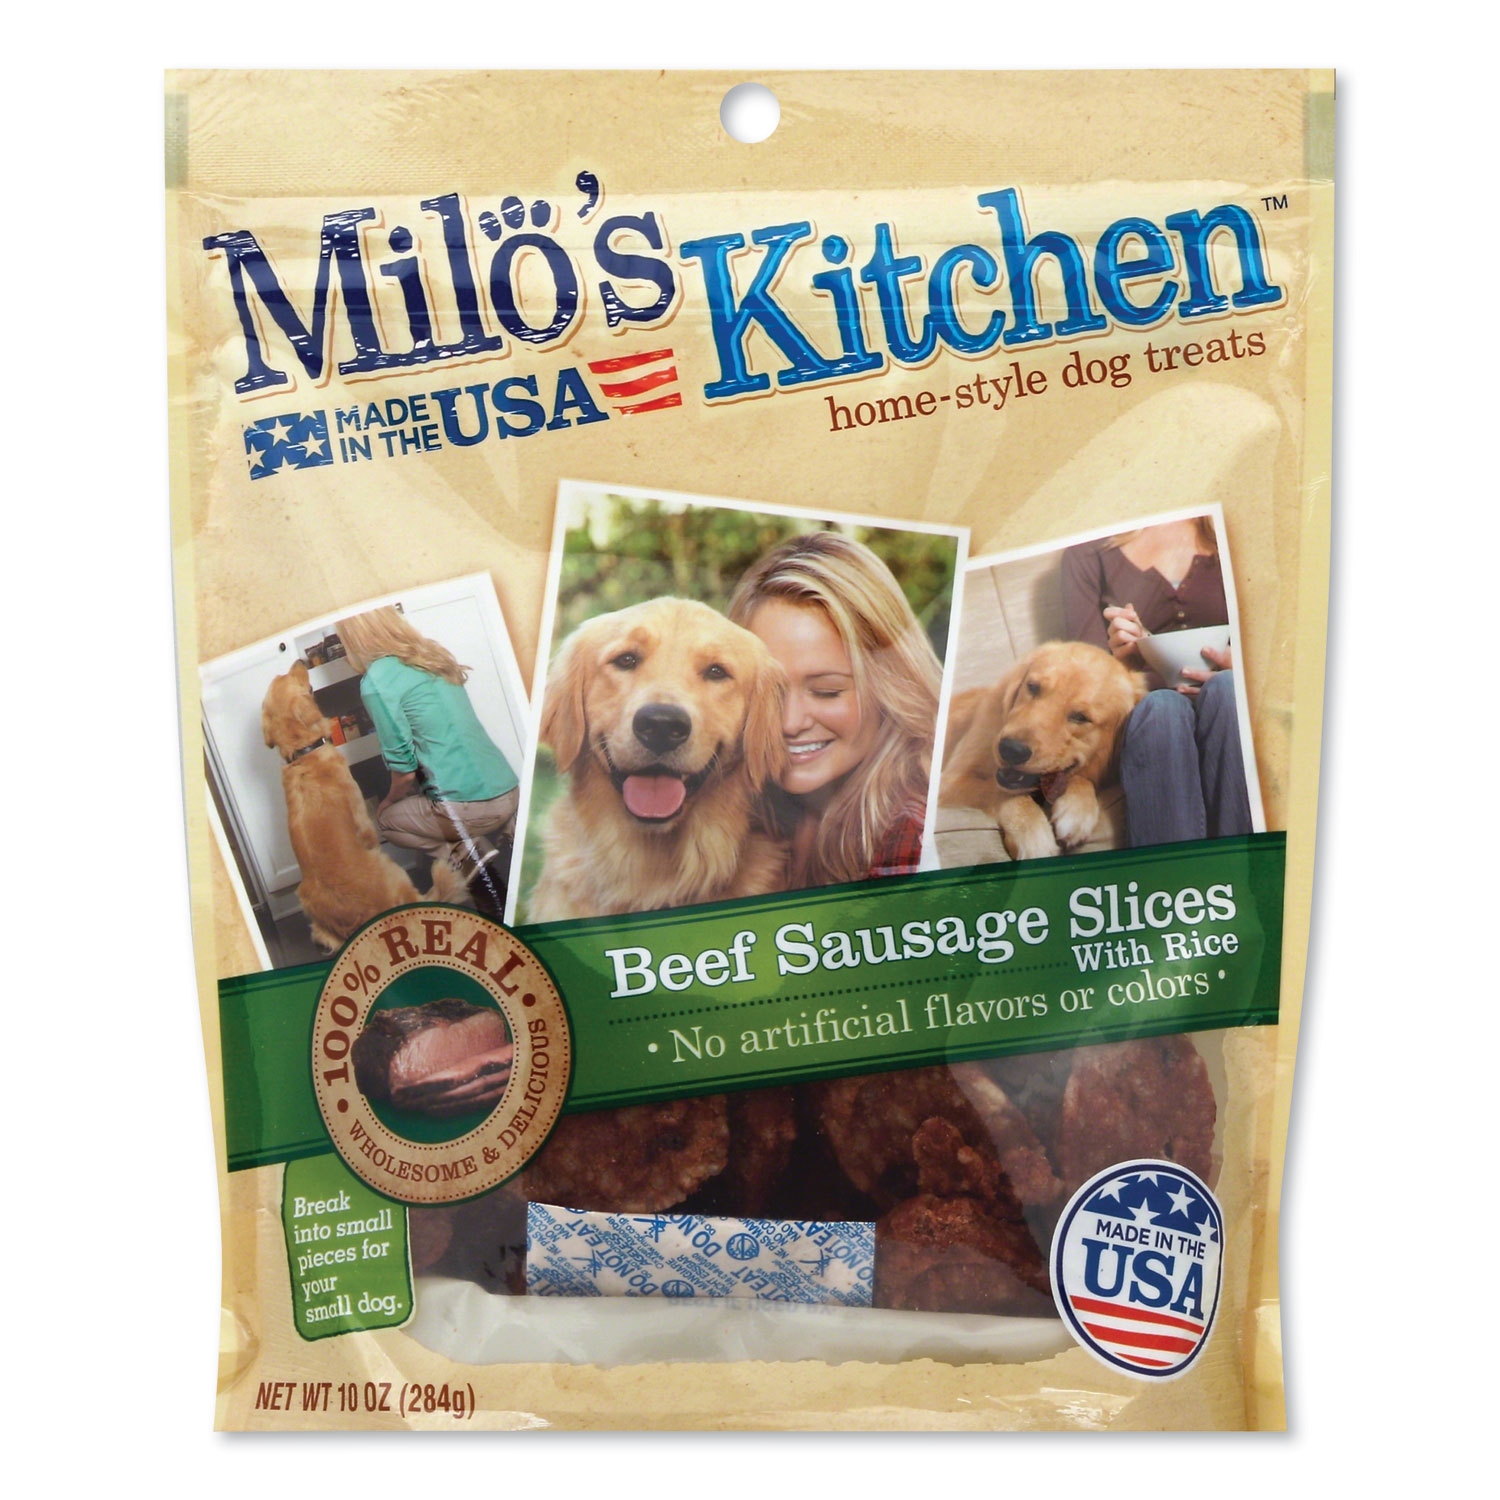 Milos Kitchen® Homestyle Dog Treats, Beef Sausage Slices with Rice, 10 oz Pouch, 5 Pouches/Carton